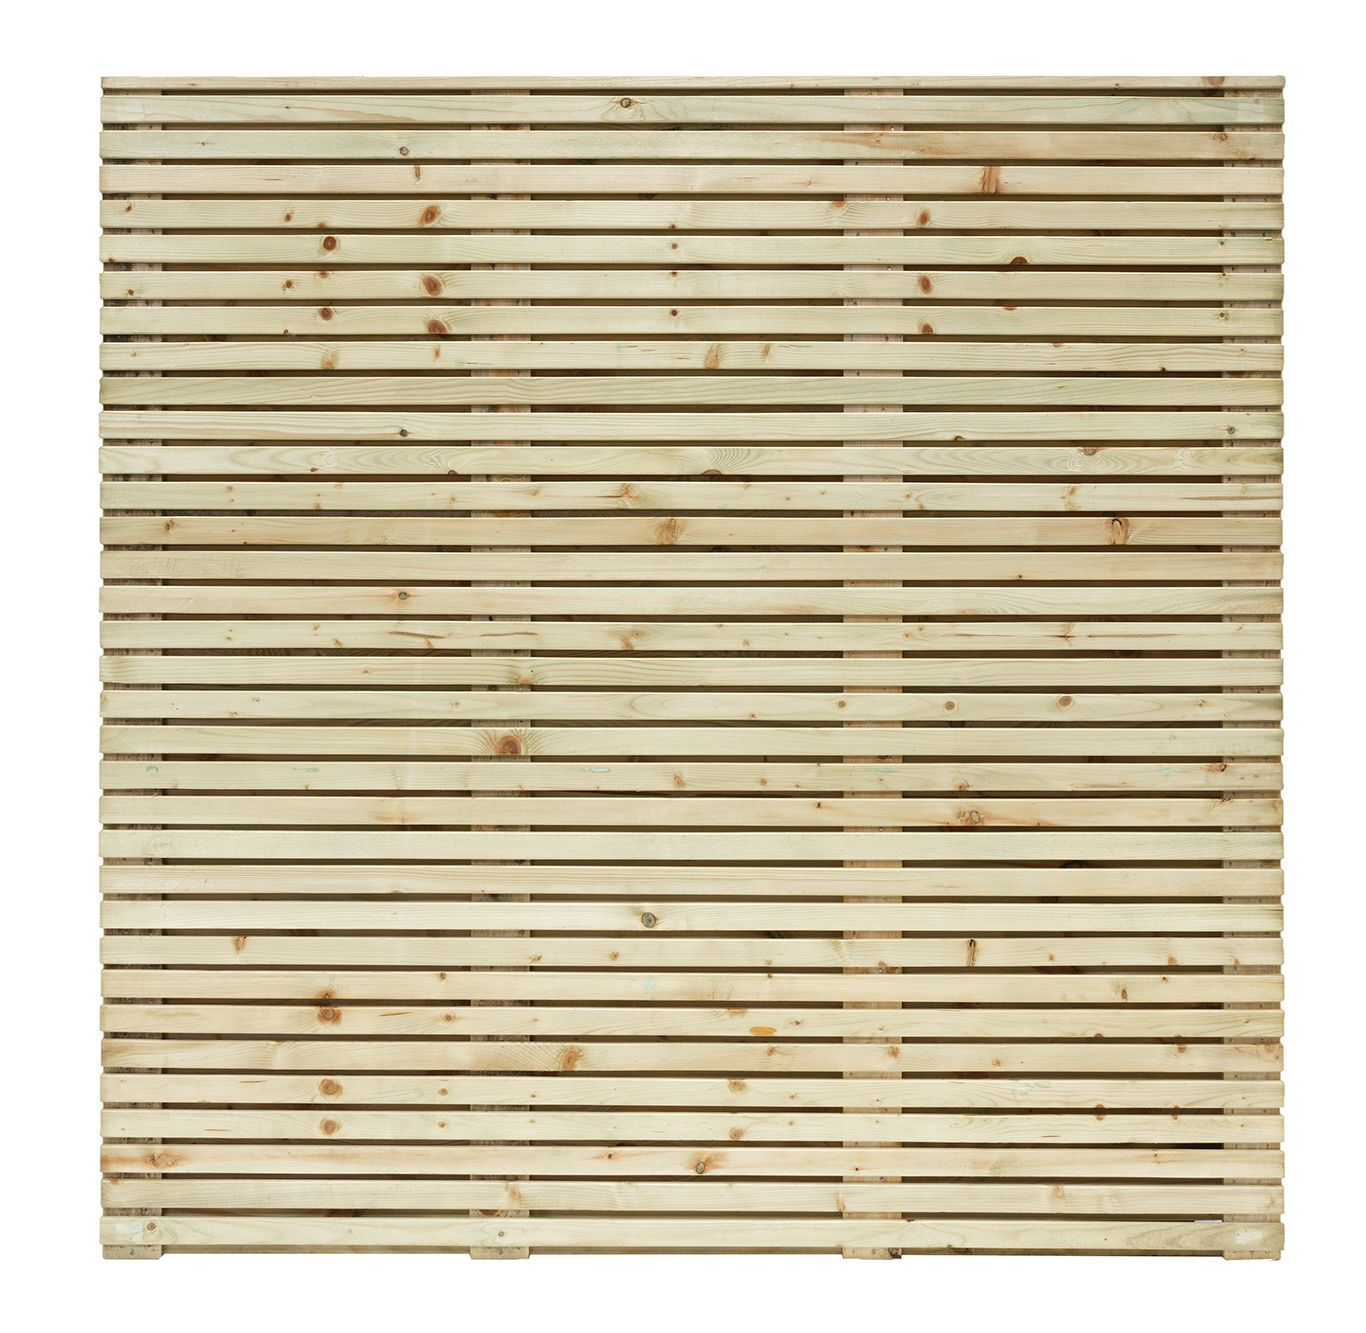 Grange Contemporary Horizontal Slat Fence Panel (w)1.79 M (h)1.79m, Pack Of 3